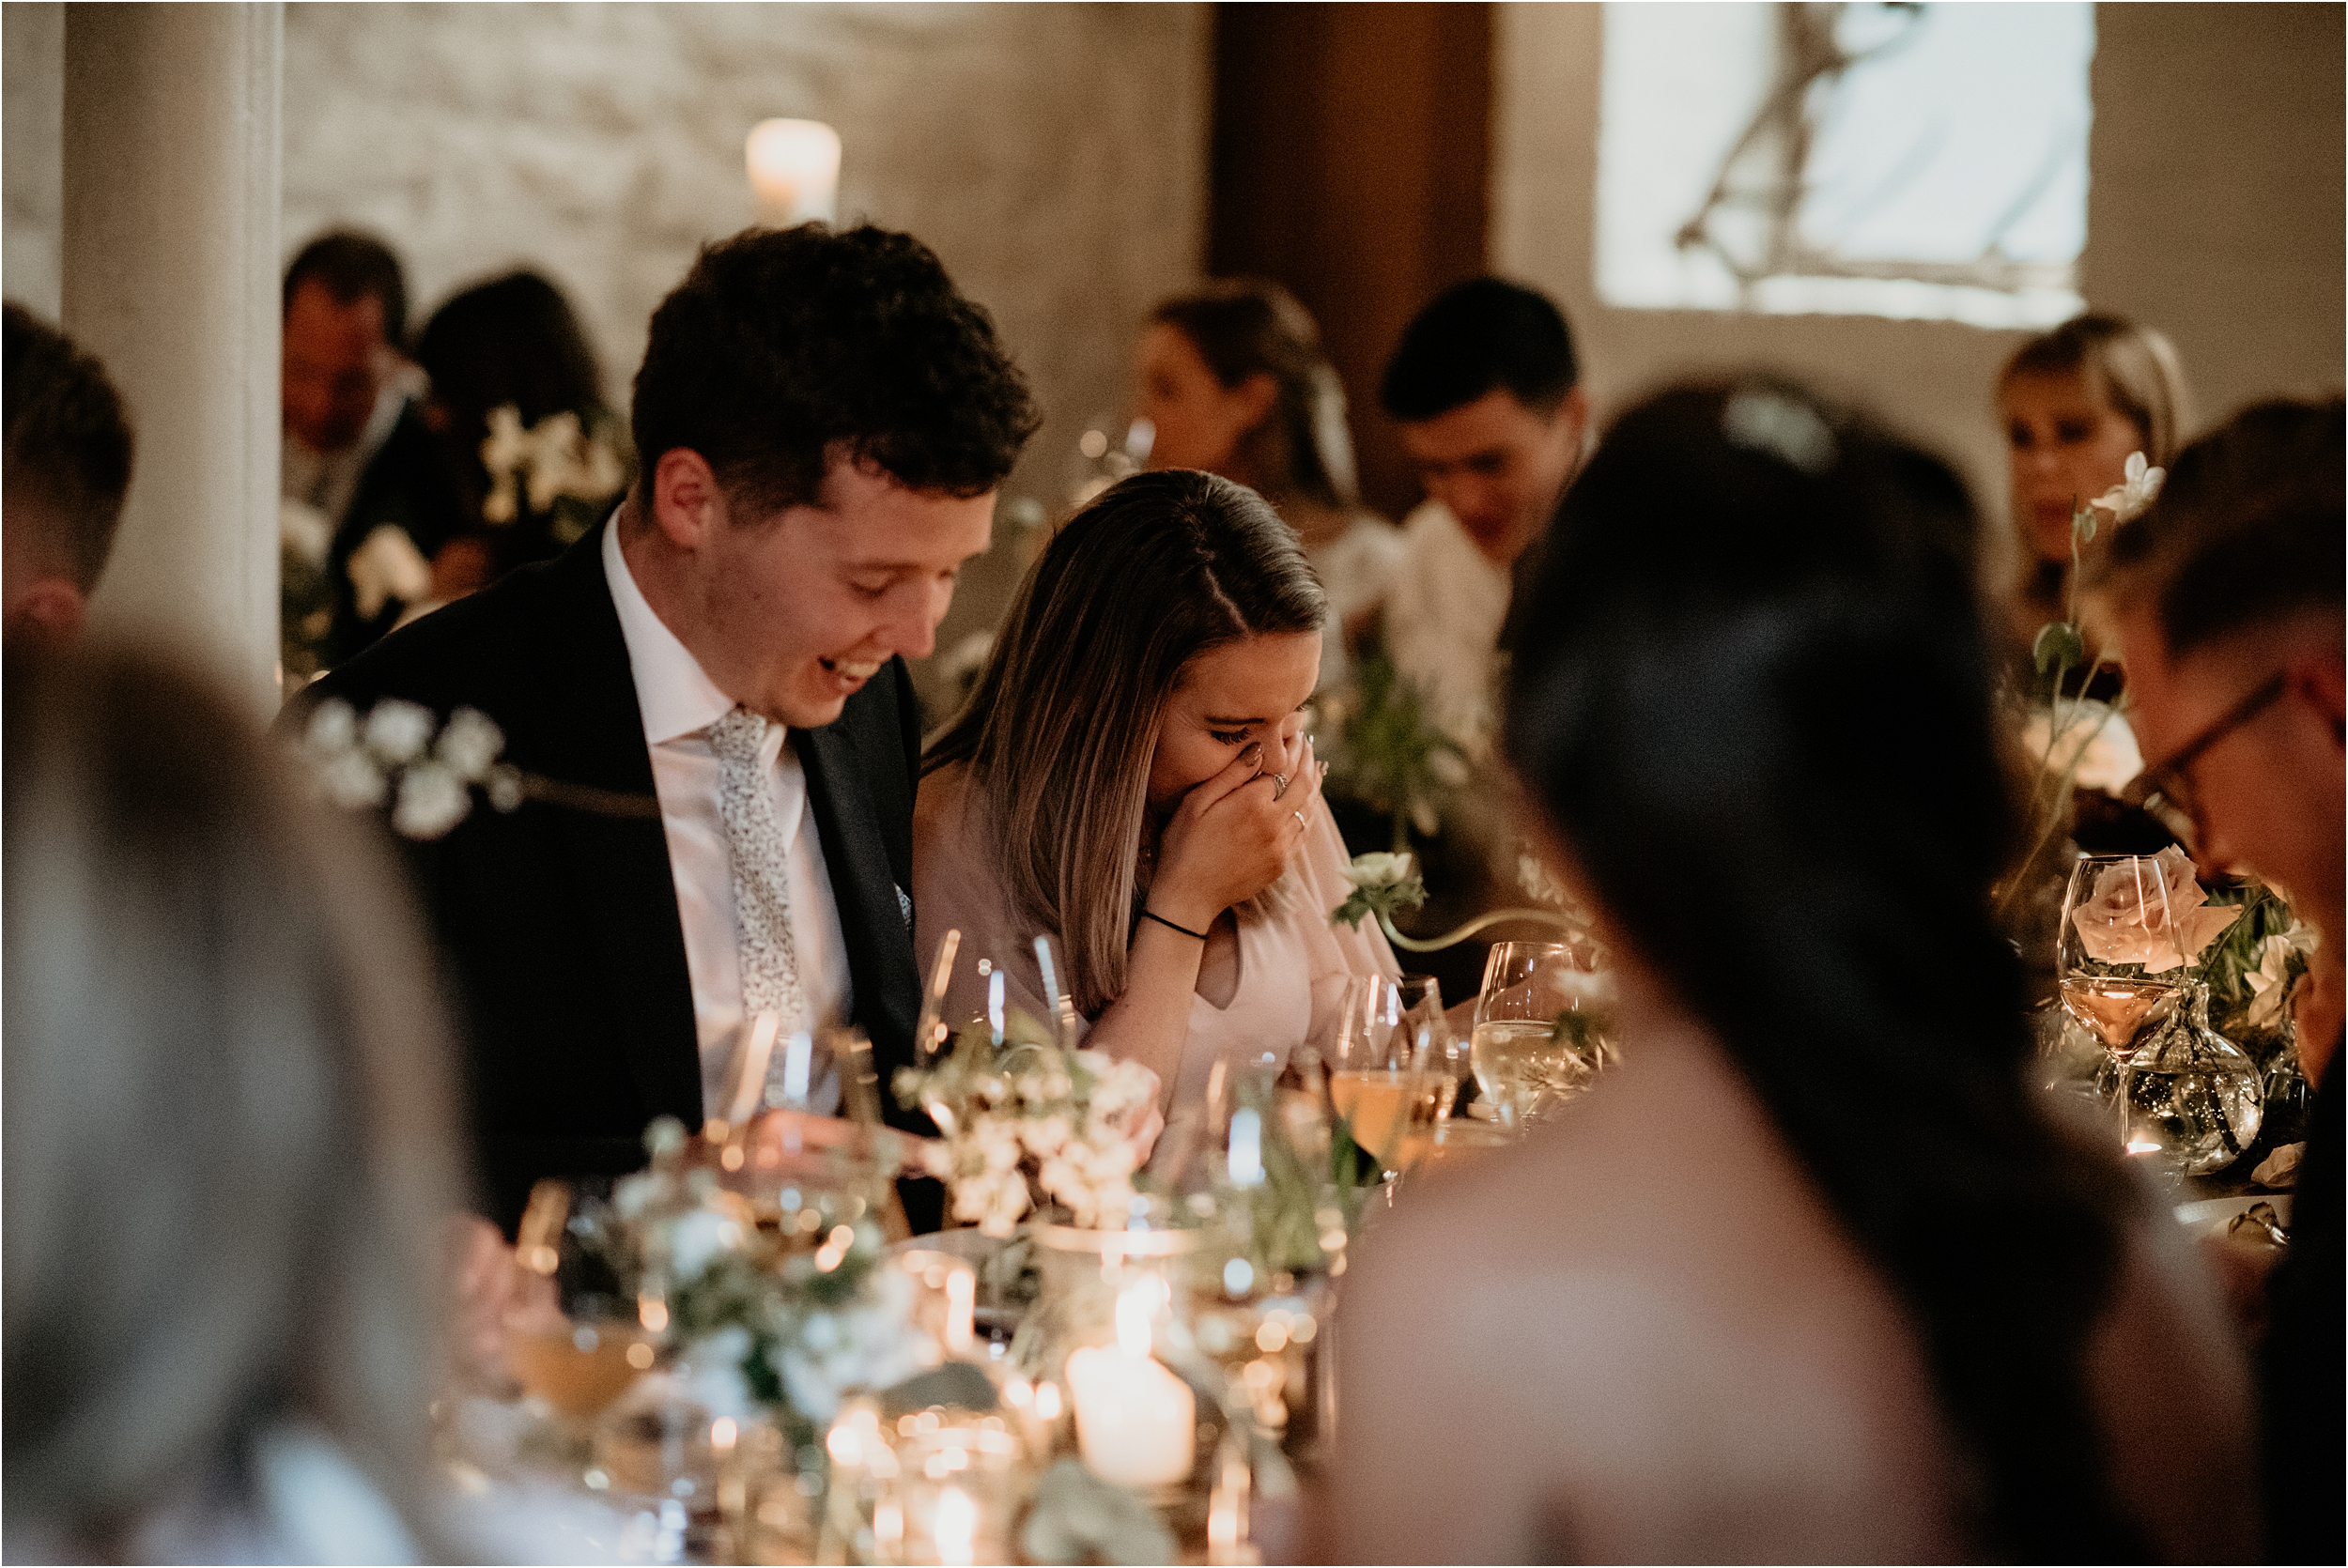 Timberyard-Edinburgh-wedding-photography__0110.jpg